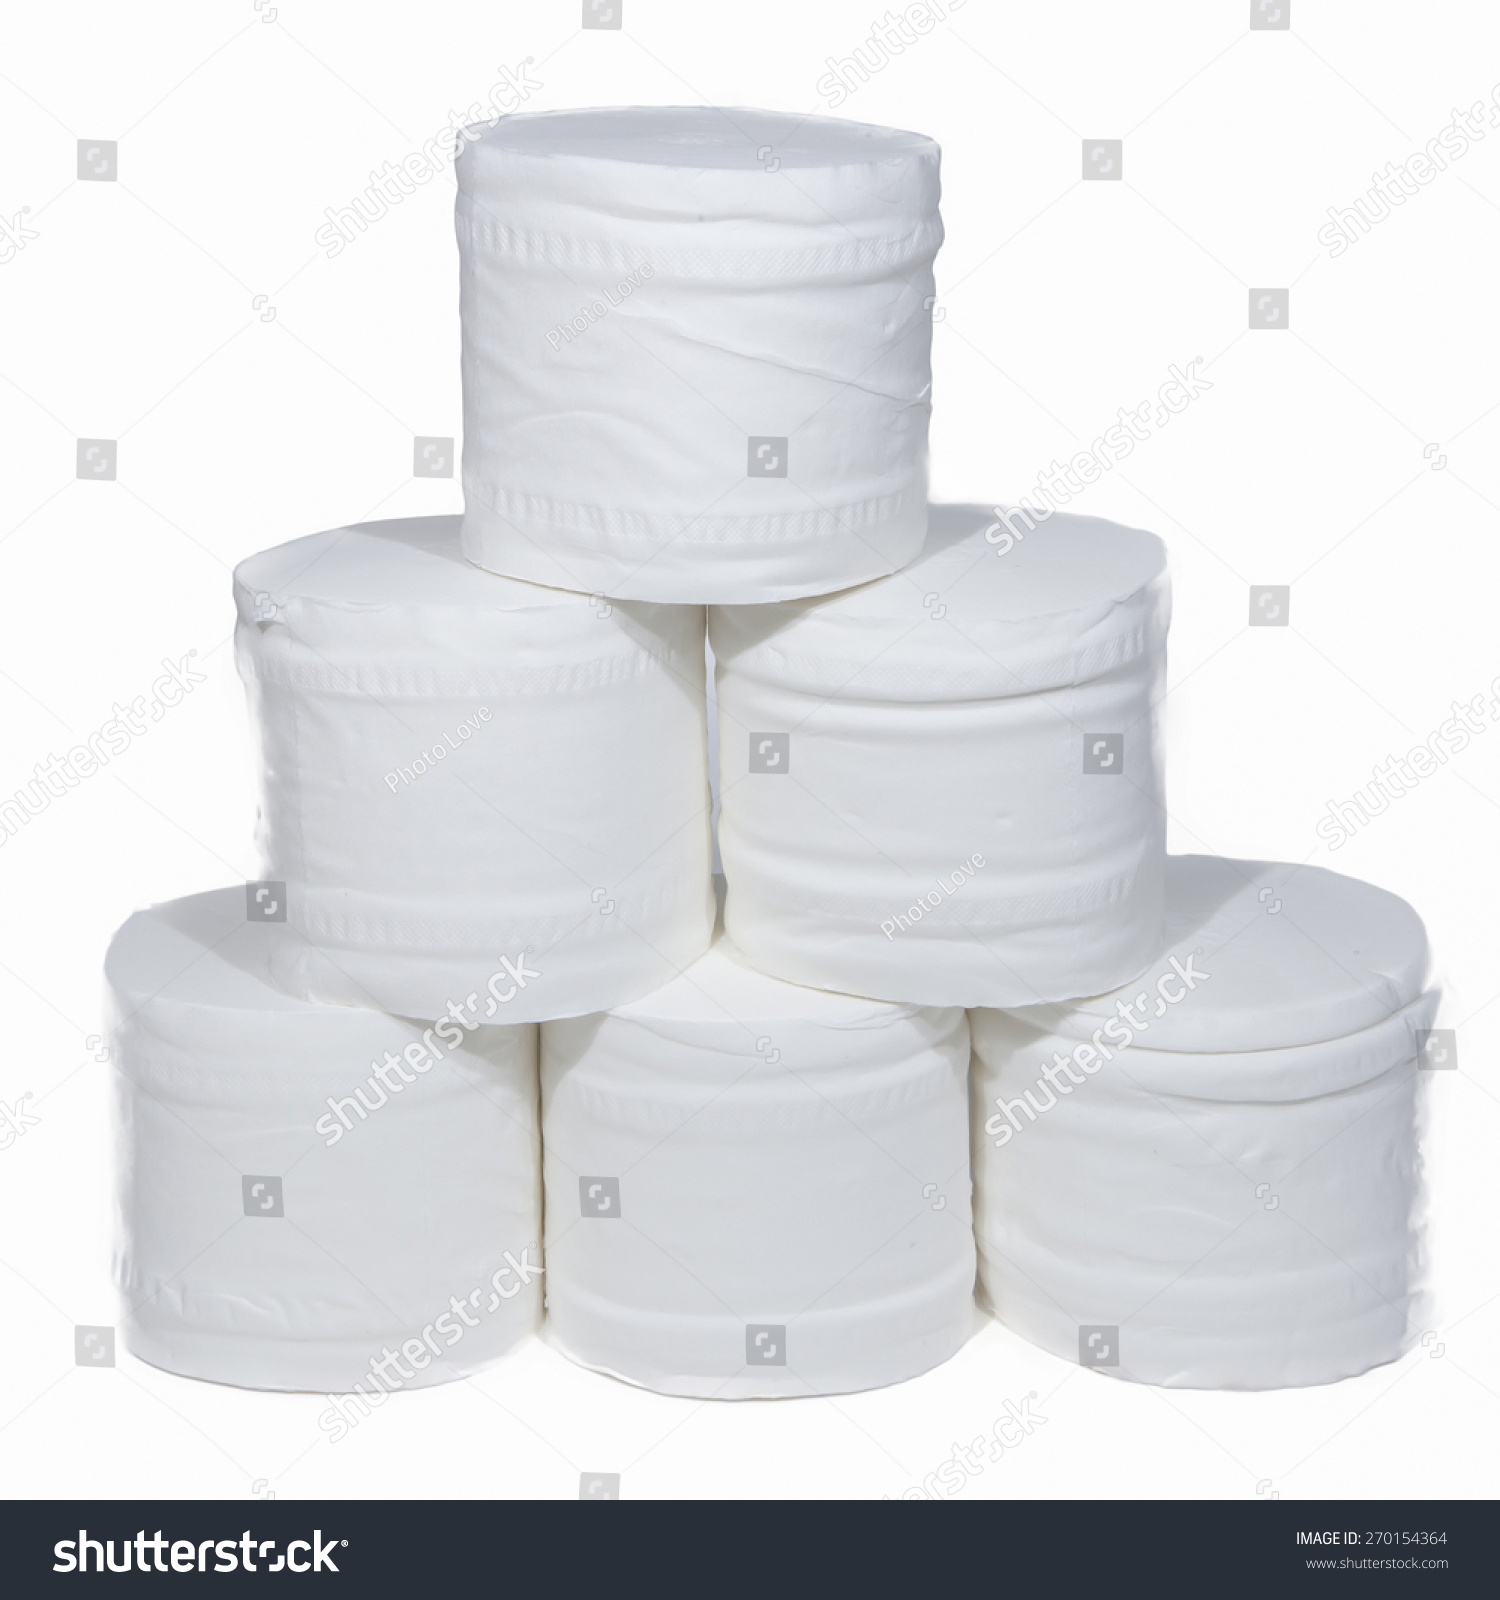 Rolls toilet paper isolated on white stock photo 270154364 shutterstock - Lavish white and grey kitchen for hygienic and bright view ...